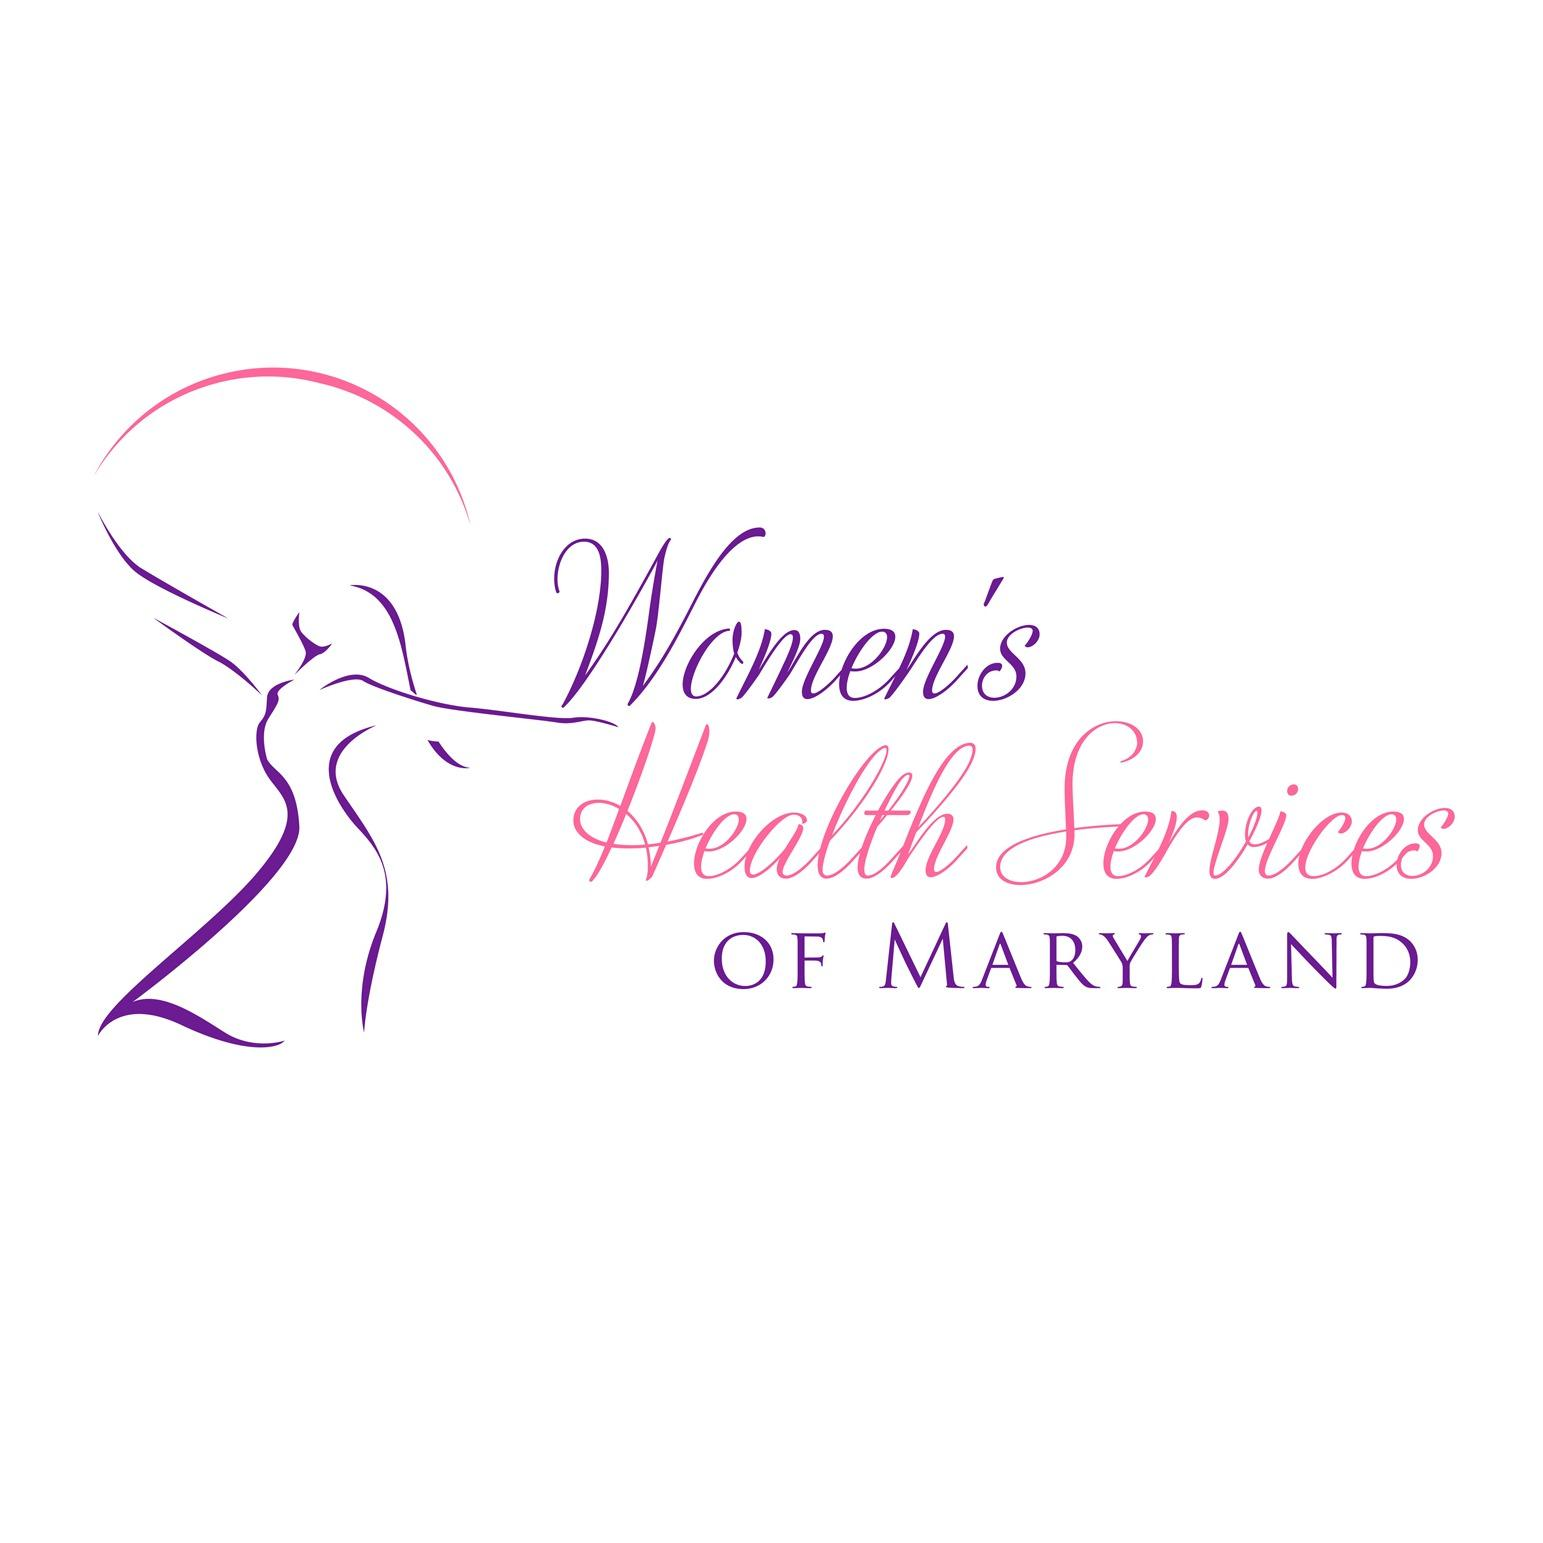 Women's Health Services of Maryland